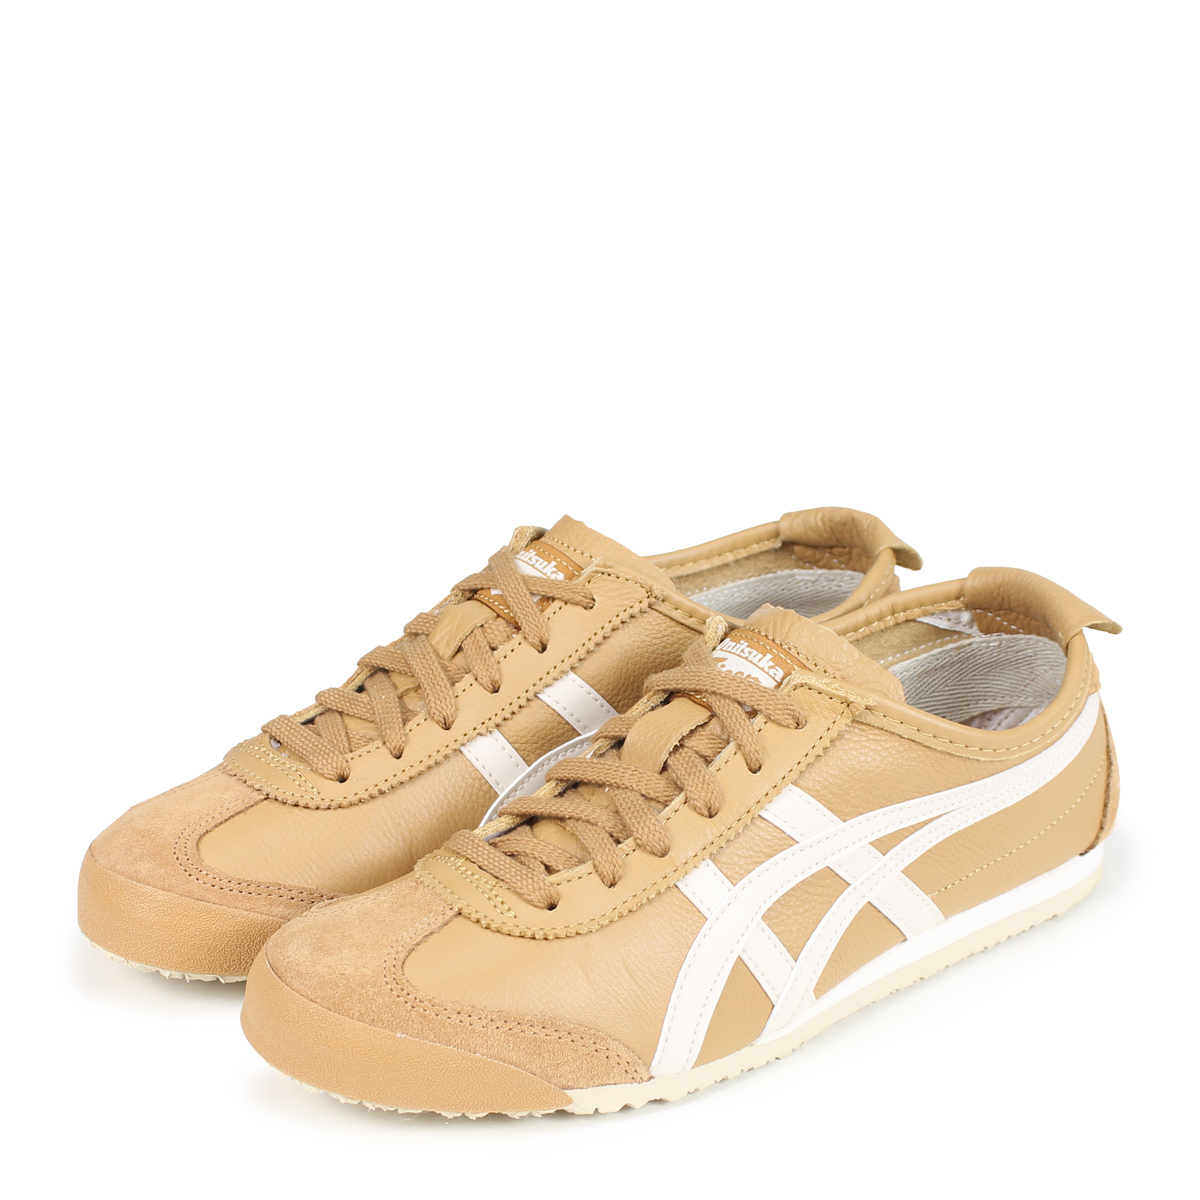 new arrival 23da2 22243 Onitsuka Tiger MEXICO 66 Onitsuka tiger Mexico 66 men's lady's sneakers  1183A201-200 brown beige [187]